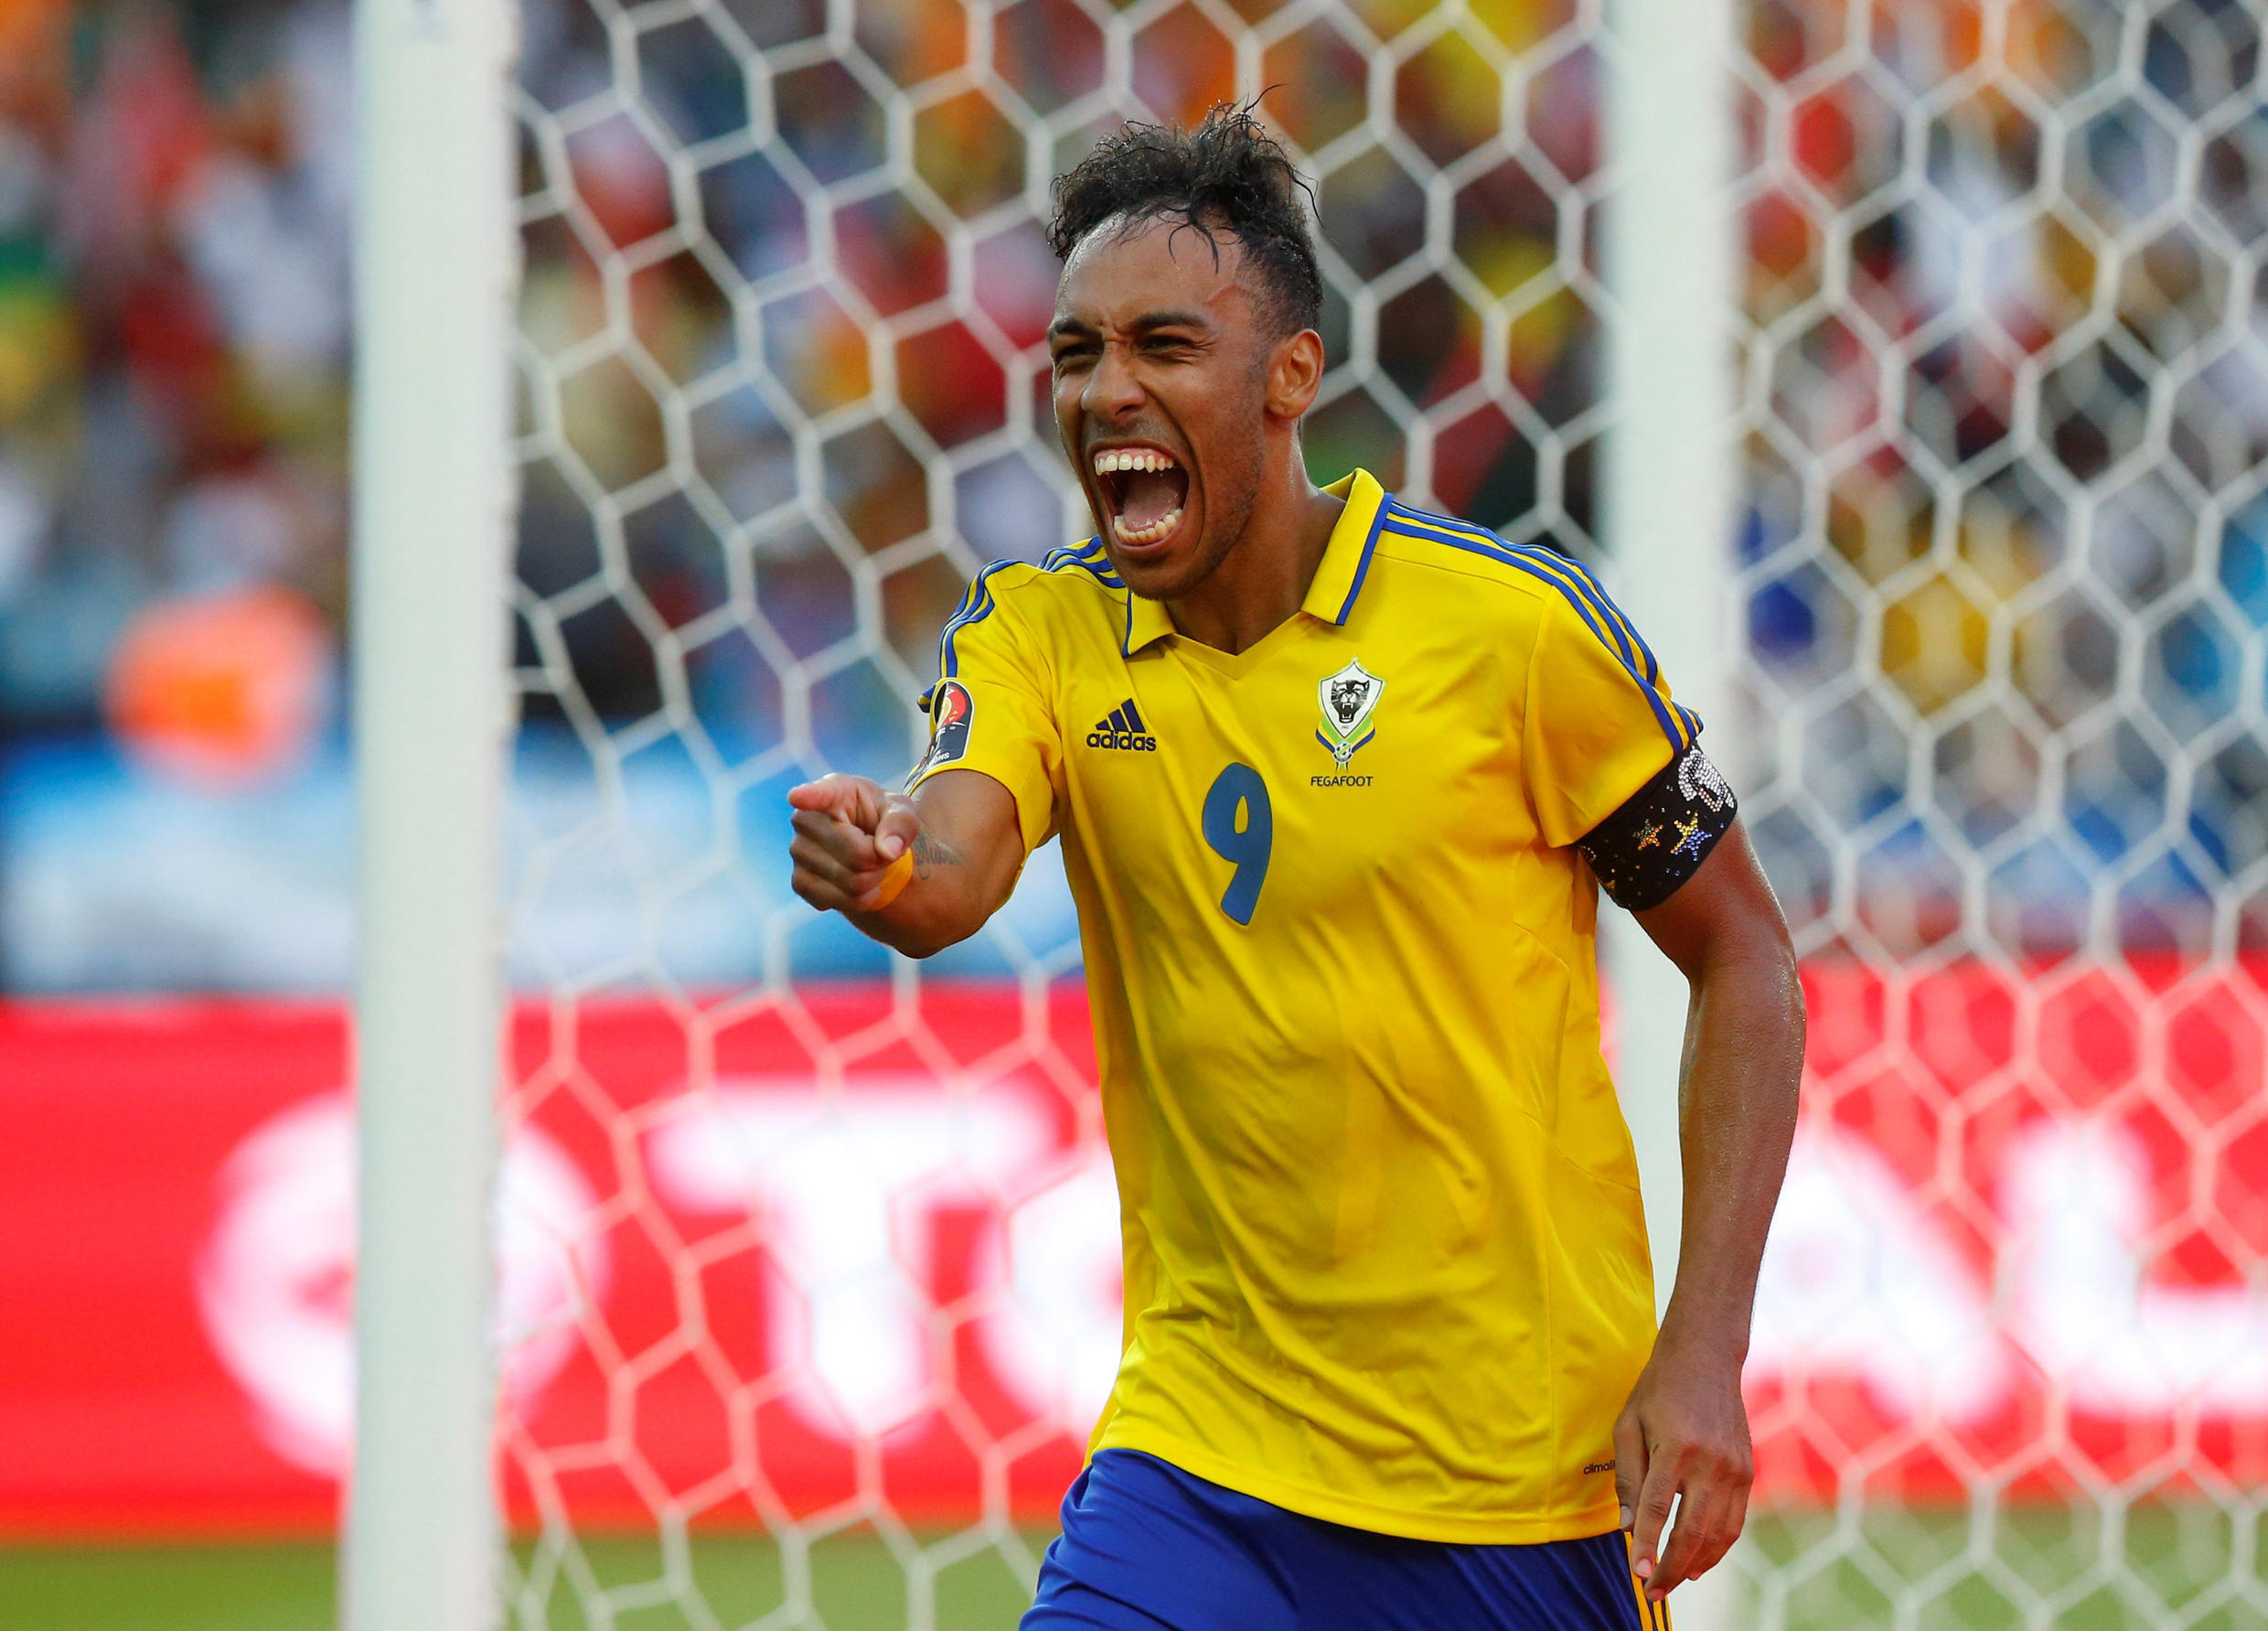 Gabon skipper Pierre-Emerick Aubameyang scored the first goal at the 2017 Africa Cup of Nations.